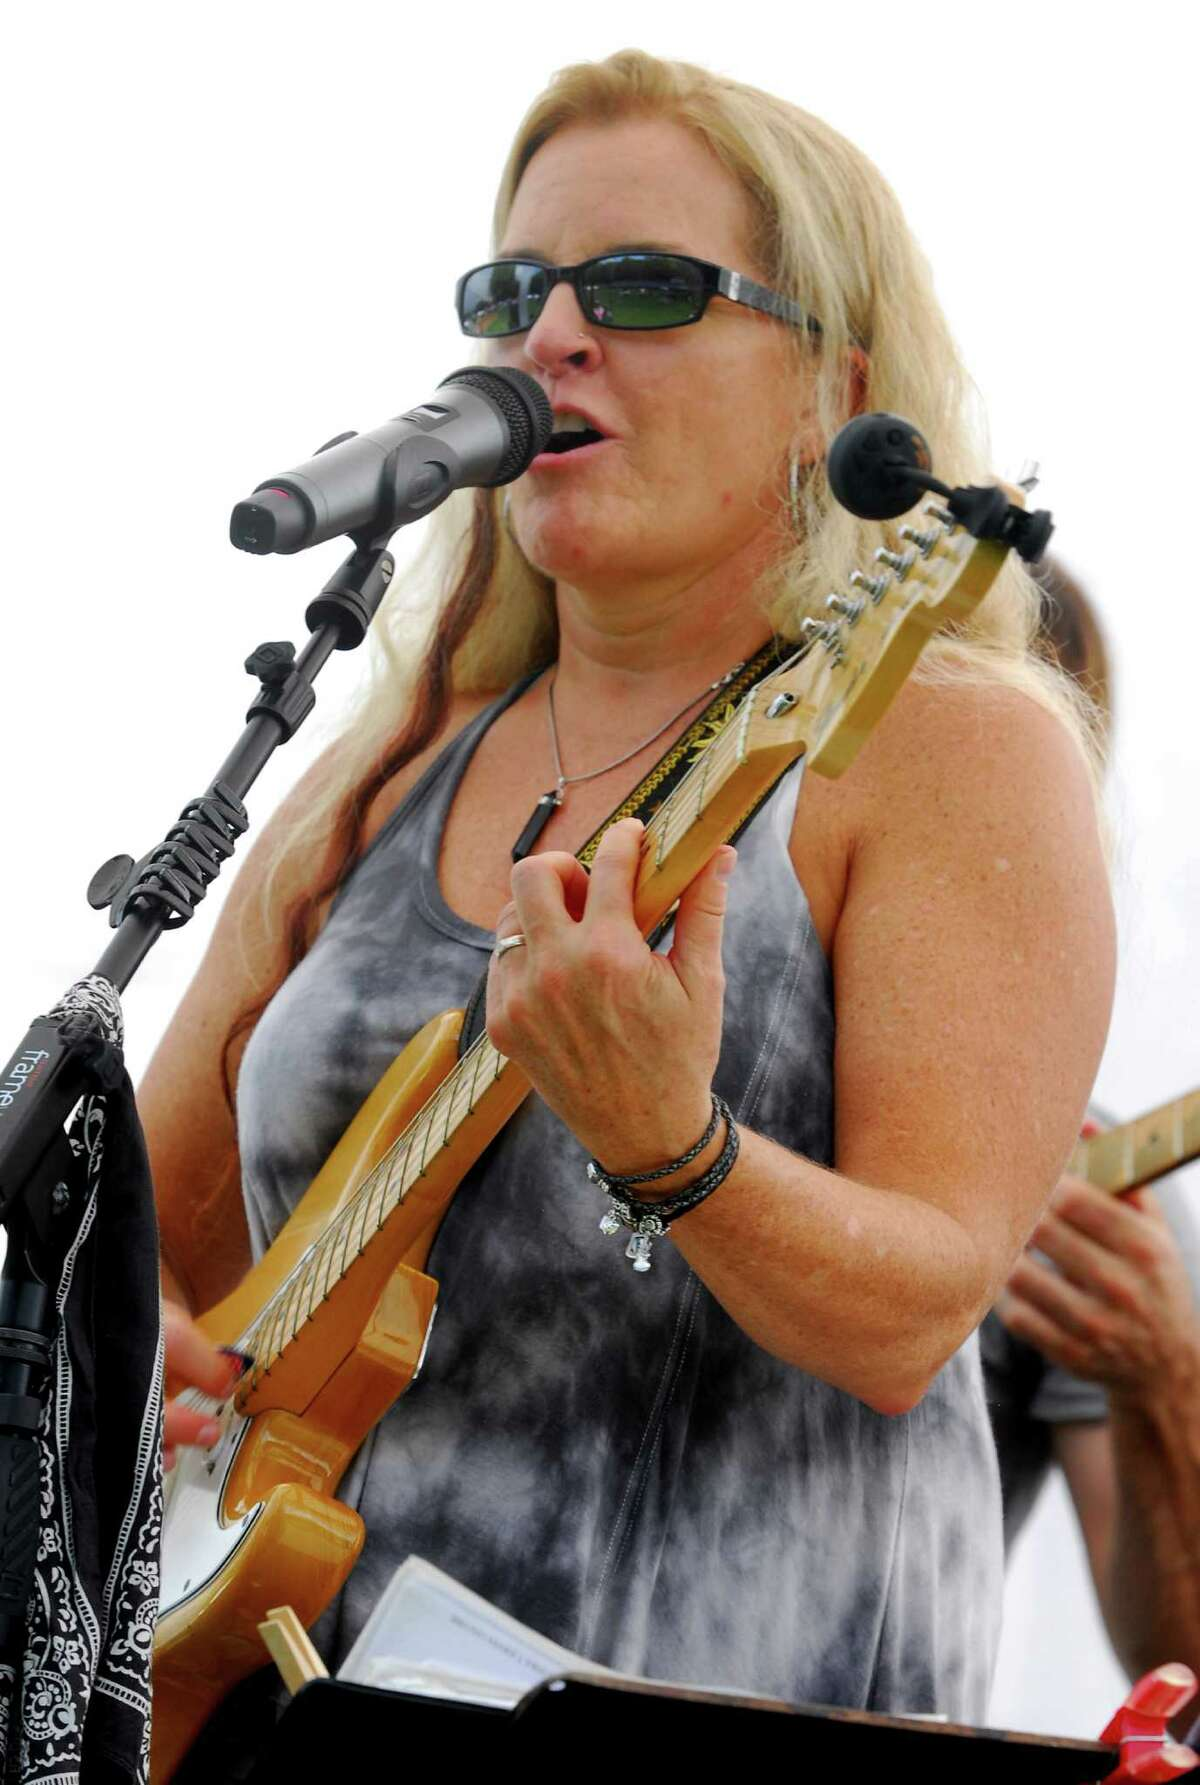 Kathy Thompson of the Kathy Thompson Band performs at Rock The Valley: A Day of Music Art & Fun held at Nolan Field in Ansonia, Conn., on Saturday Aug. 20, 2016. Other bands in the lineup included All Funk'd Up, 1980's Glam band XYZ (Revisited) and Quicksand Planet supporting our internationally acclaimed, the one and only, cast of Beatlemania, as well as a wide variety of Artisans, Crafters and Vendors of all types, great foods, a beer garden, a Kid's Zone and much more!